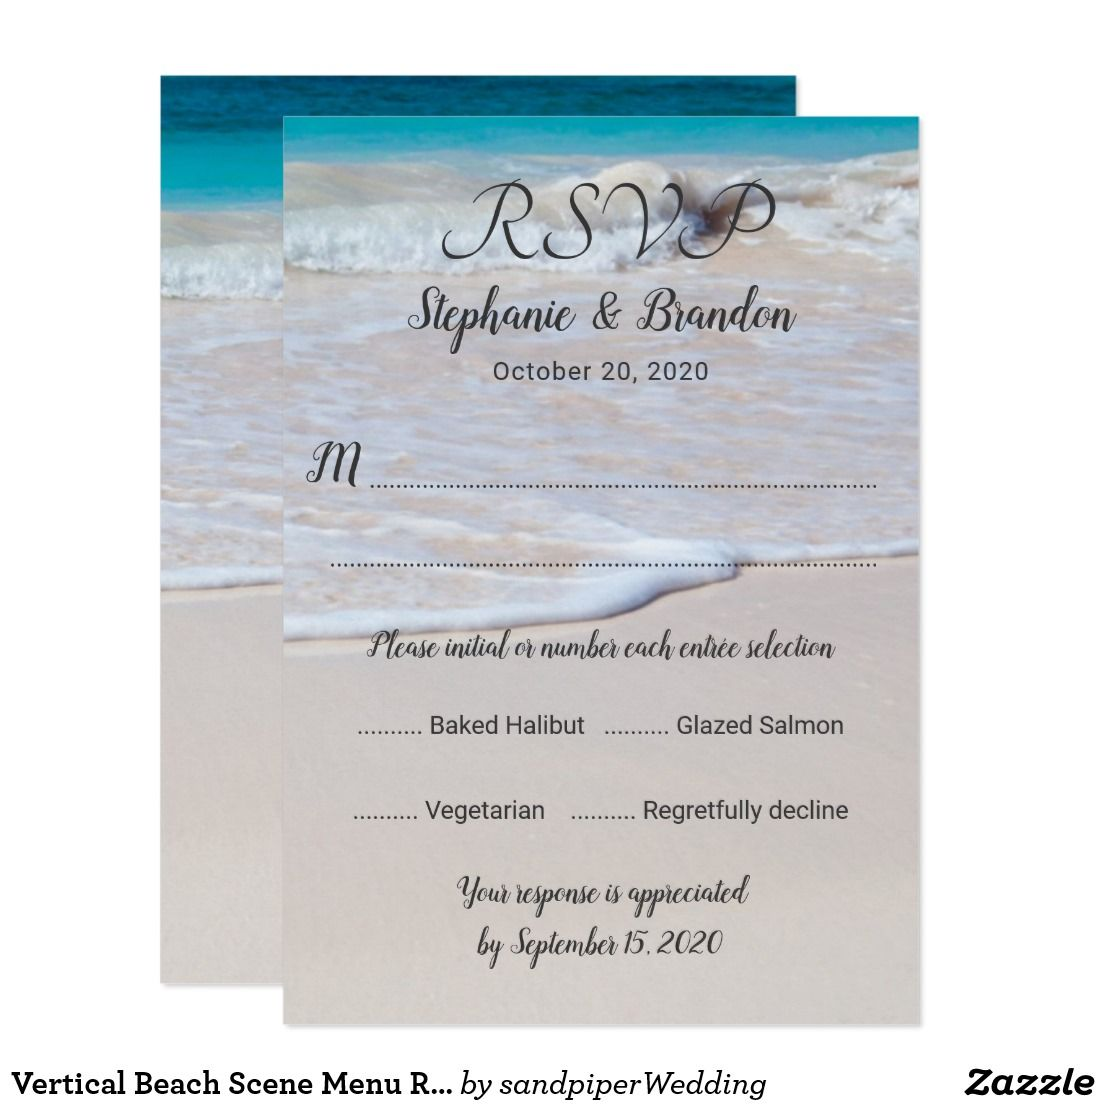 Vertical menu rsvp wedding reply enclosure cards with a beach scene ...